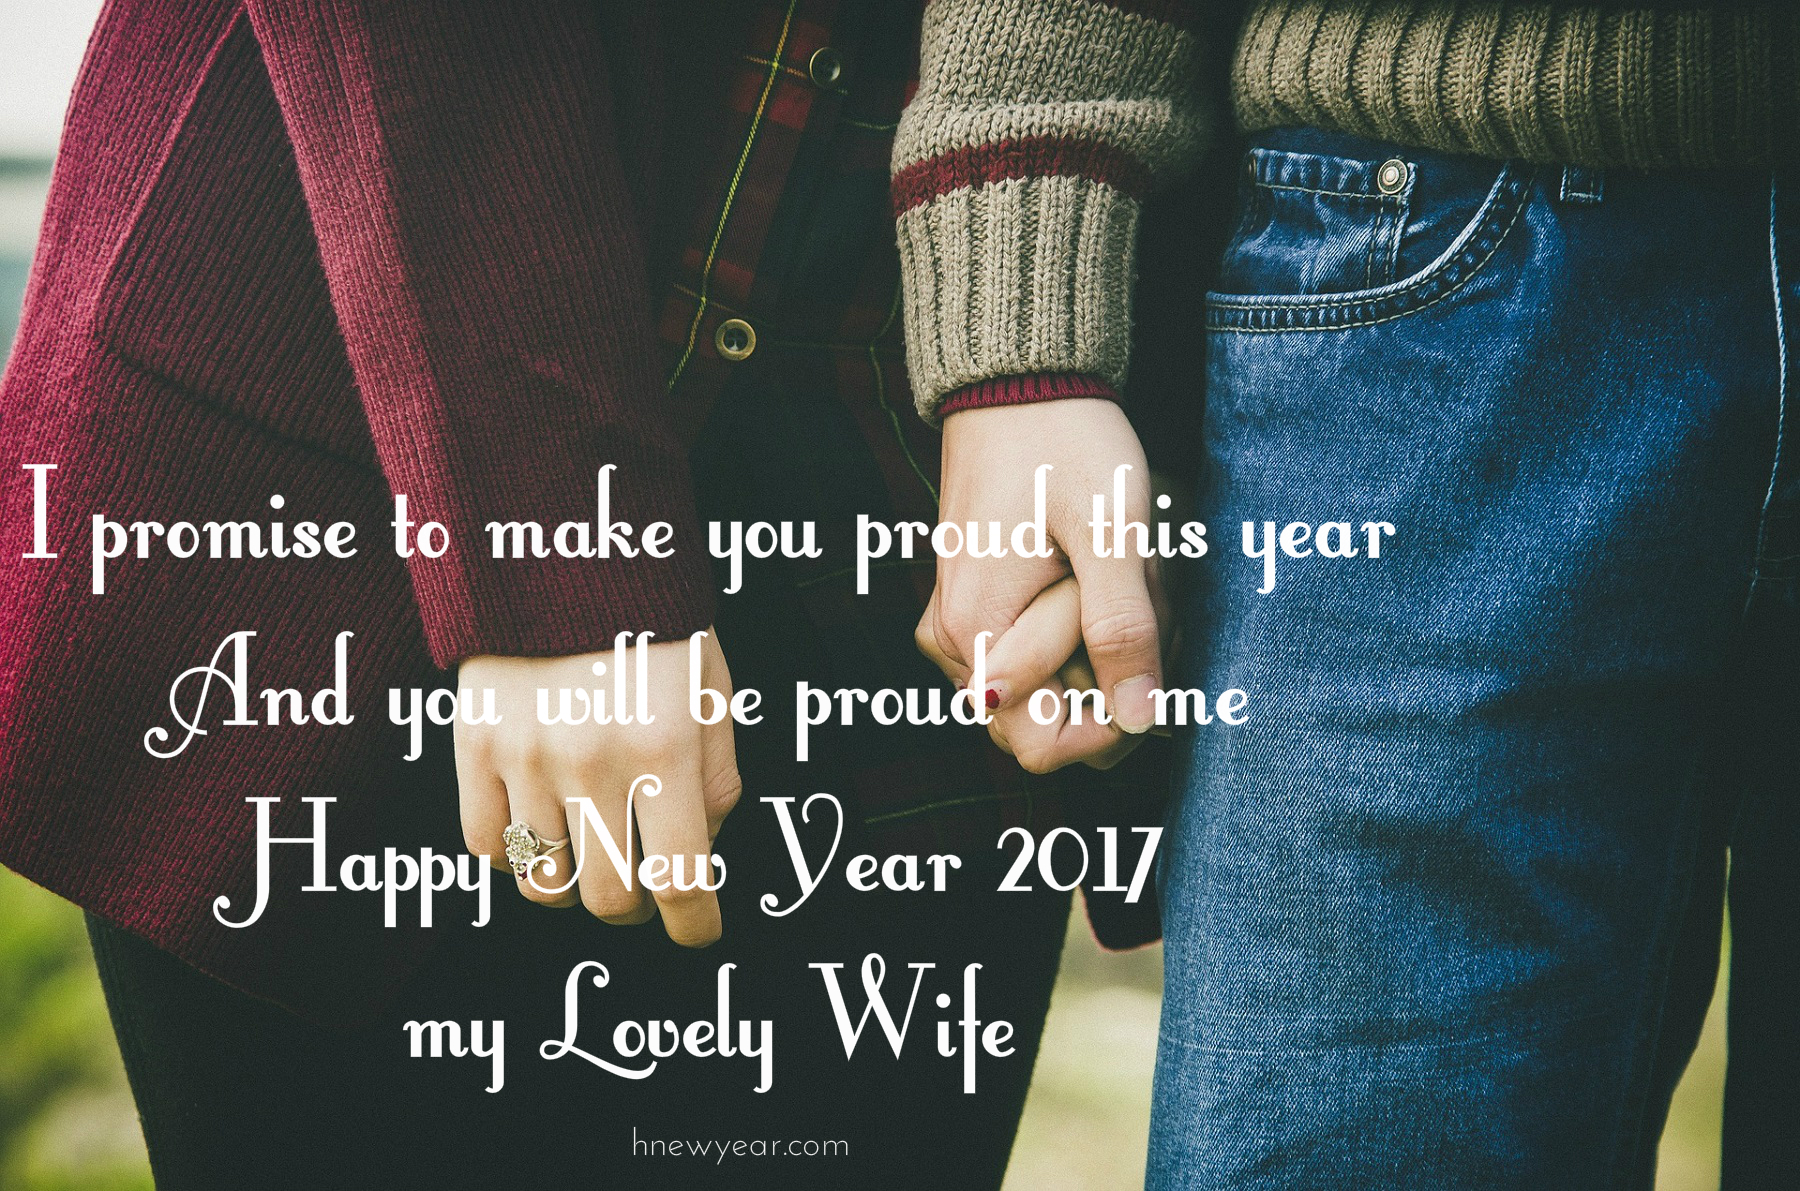 happy new year my lovely wife